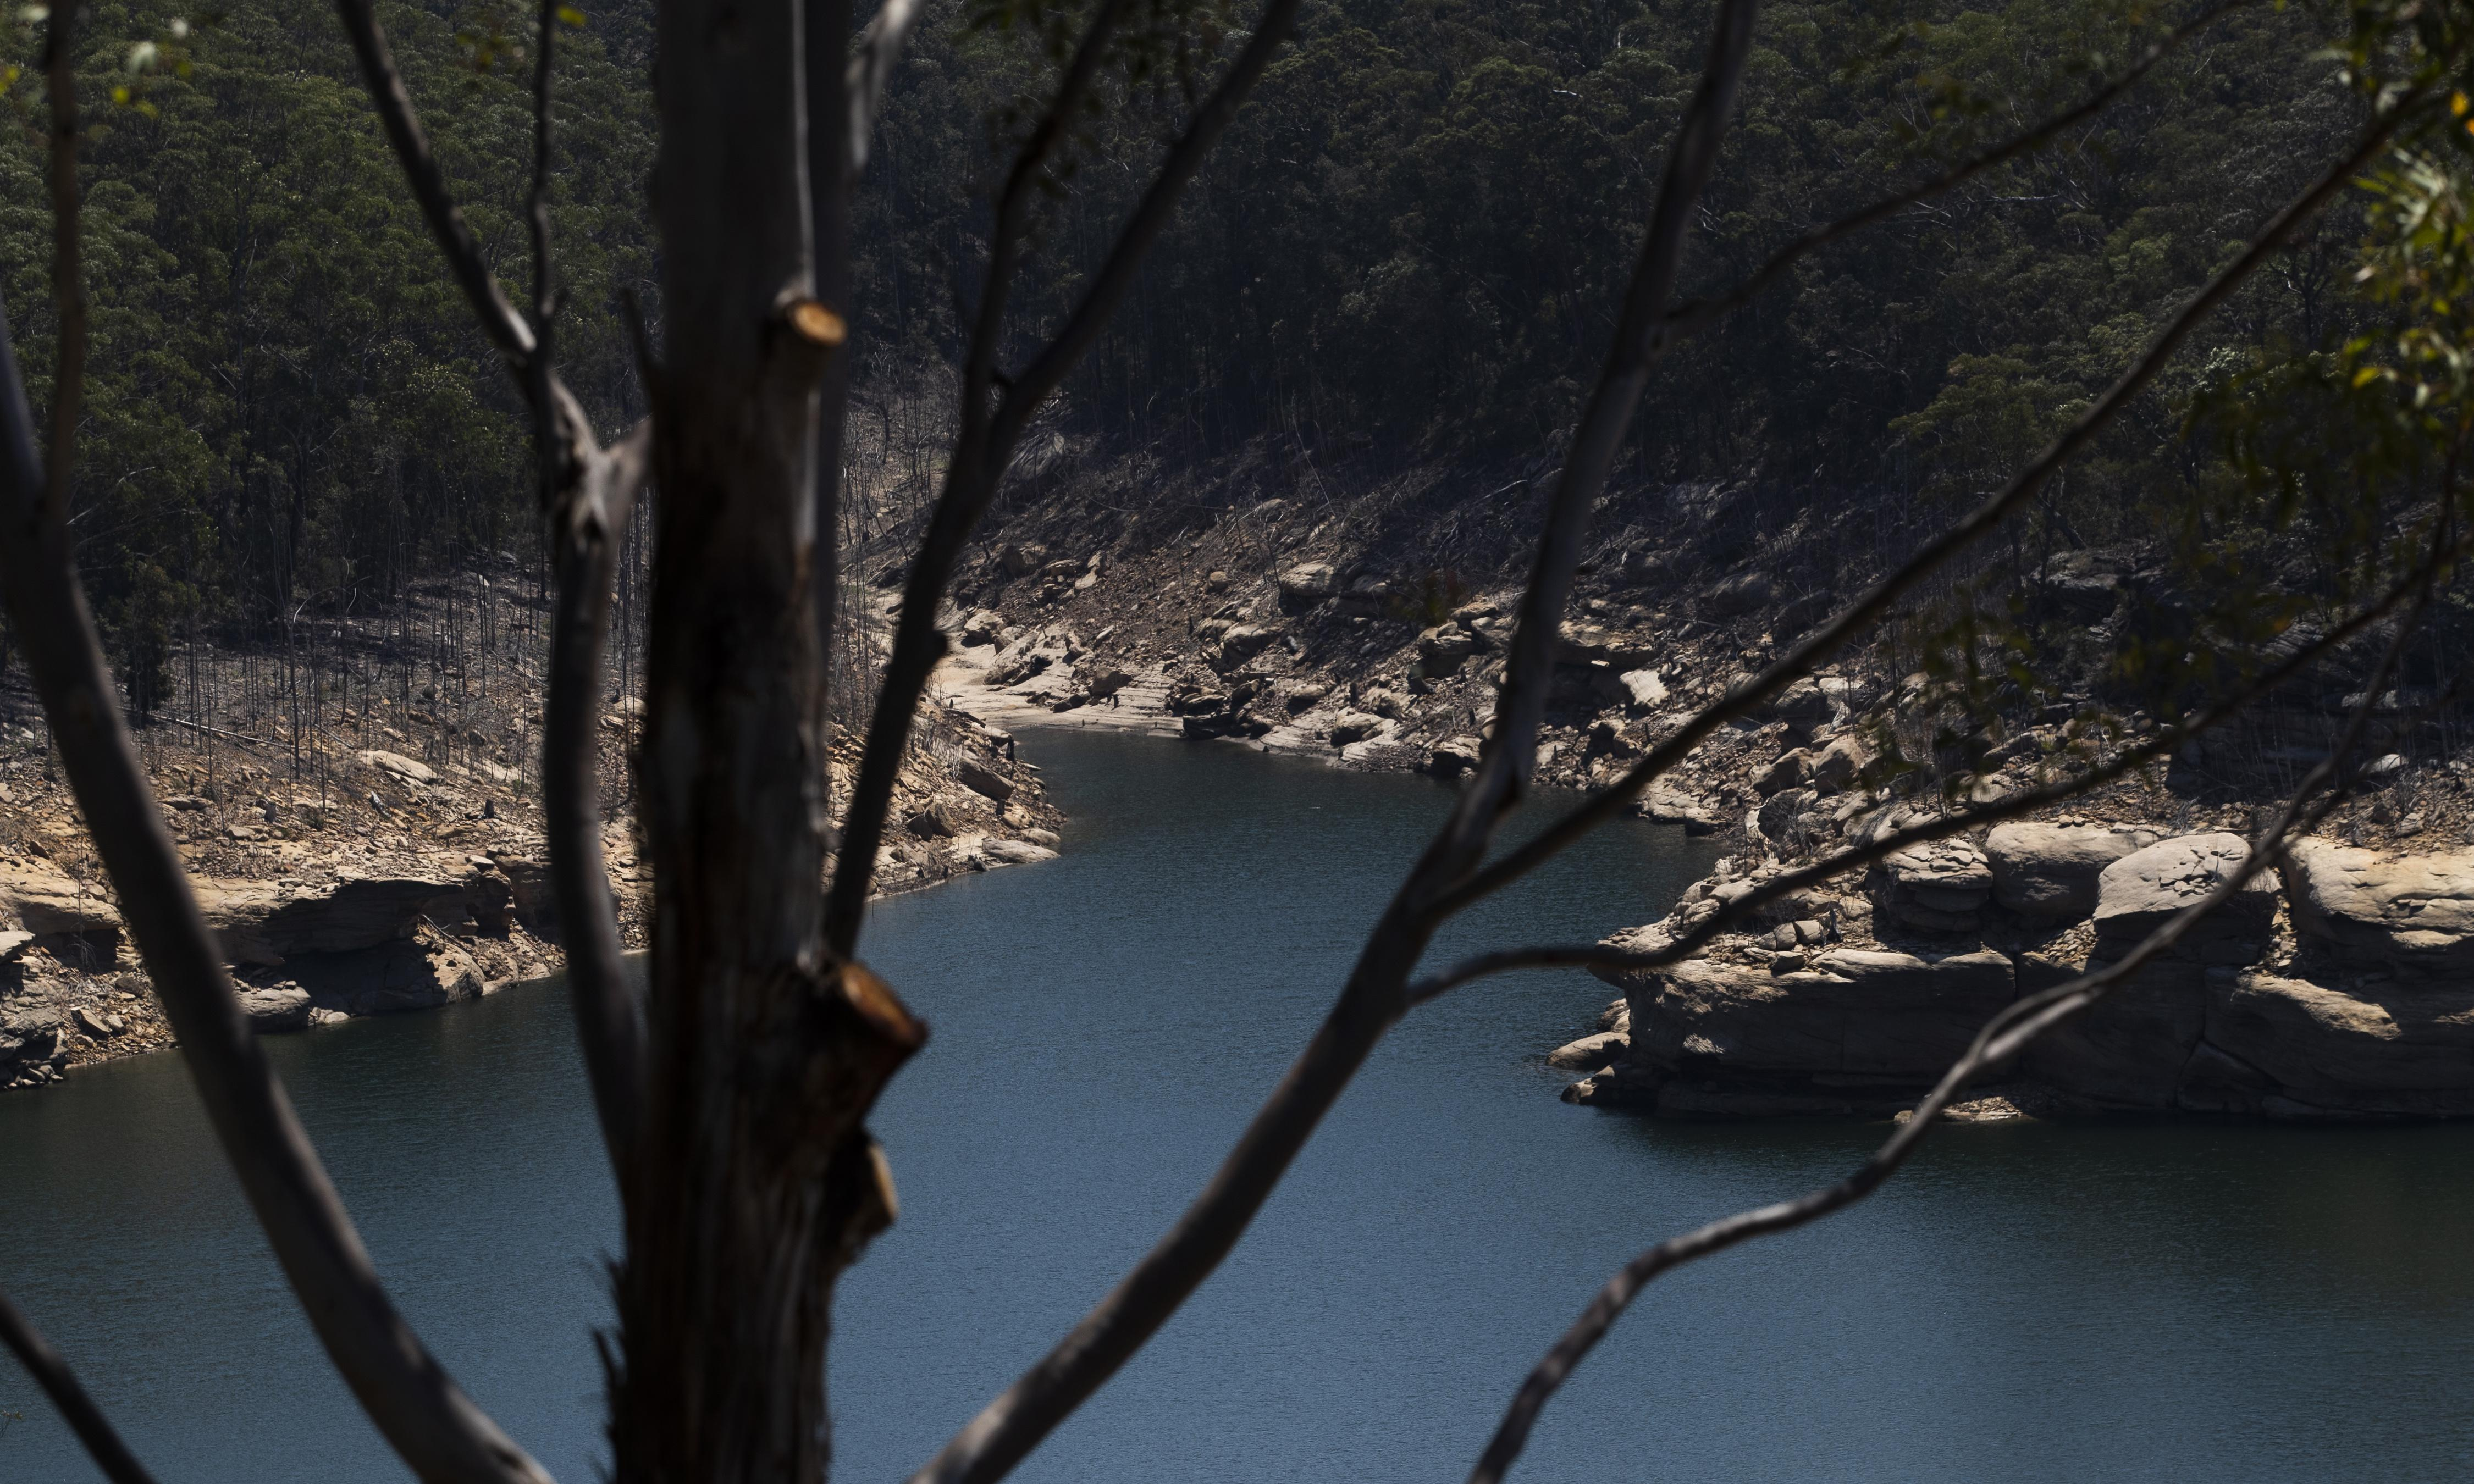 Sydney's drinking water could be polluted by bushfire ash in Warragamba Dam catchment, expert says